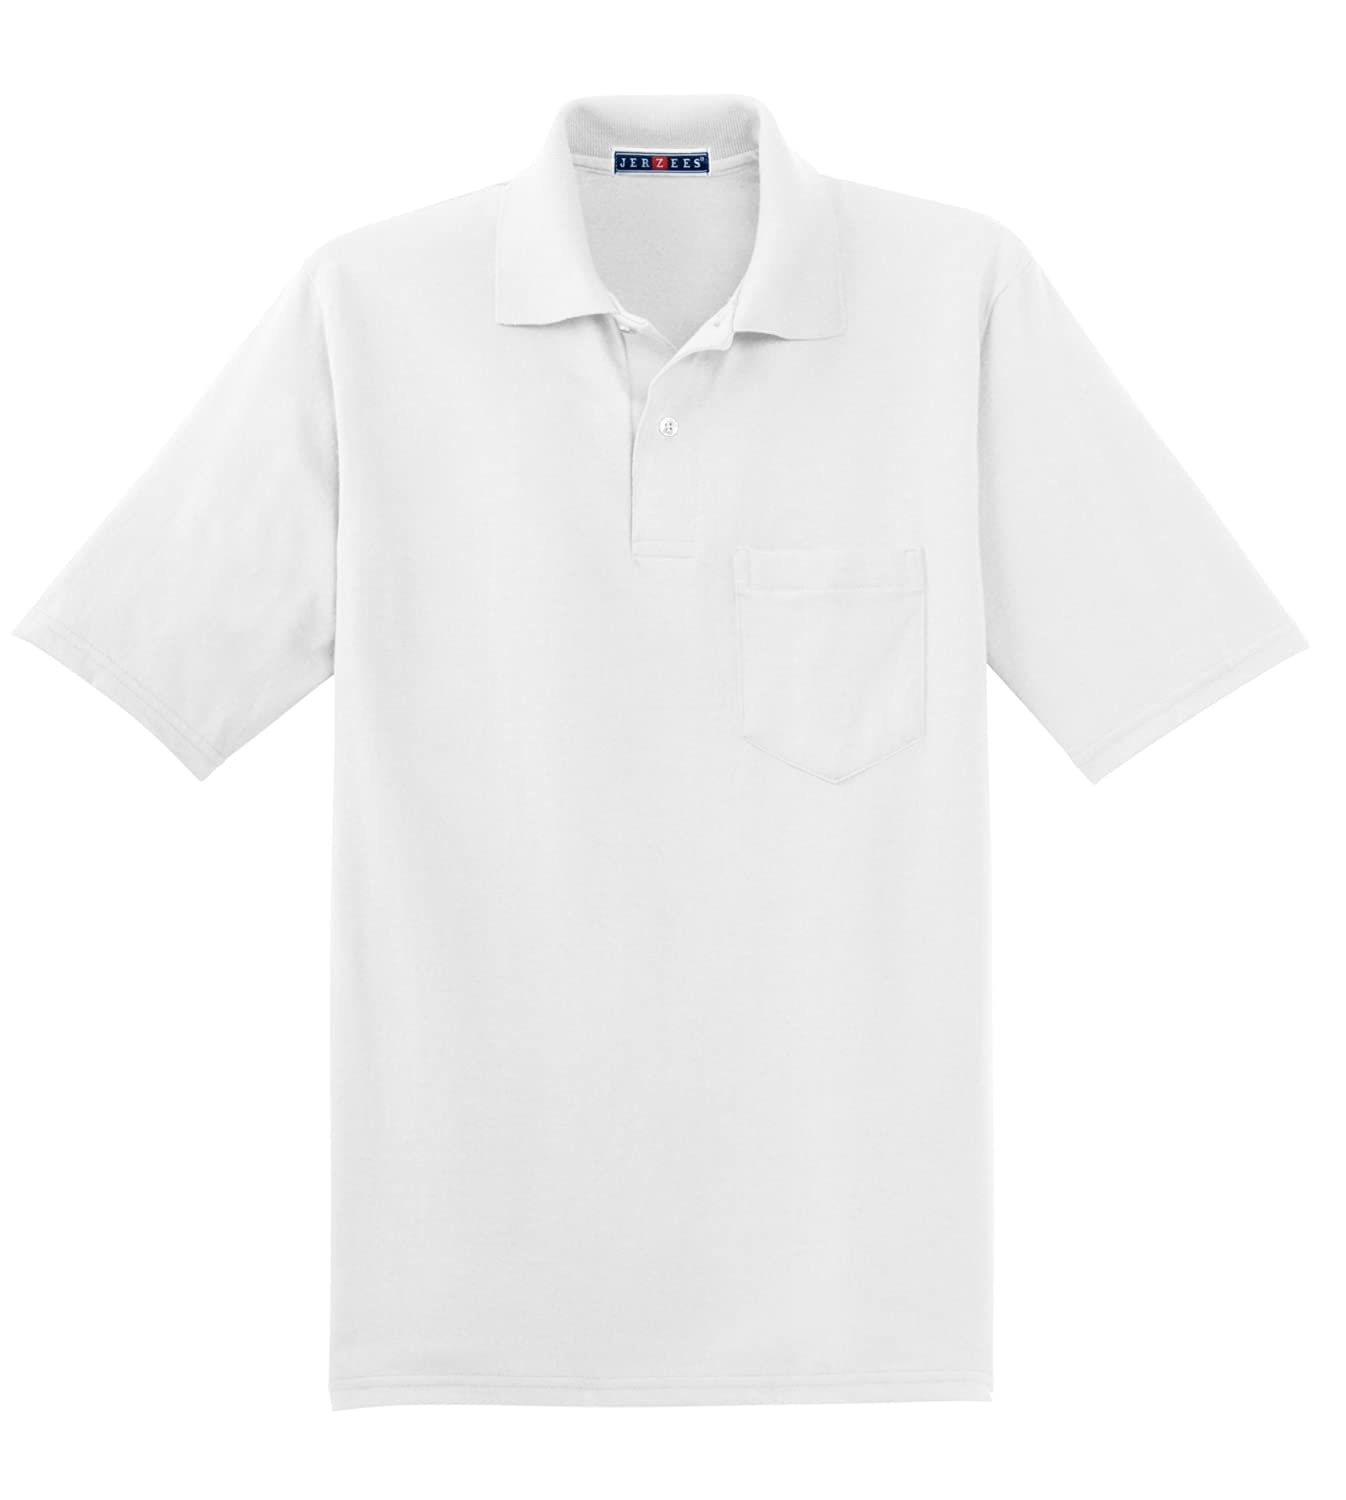 436P Jerzees Mens 50//50 Jersey Pocket Polo with SpotShield